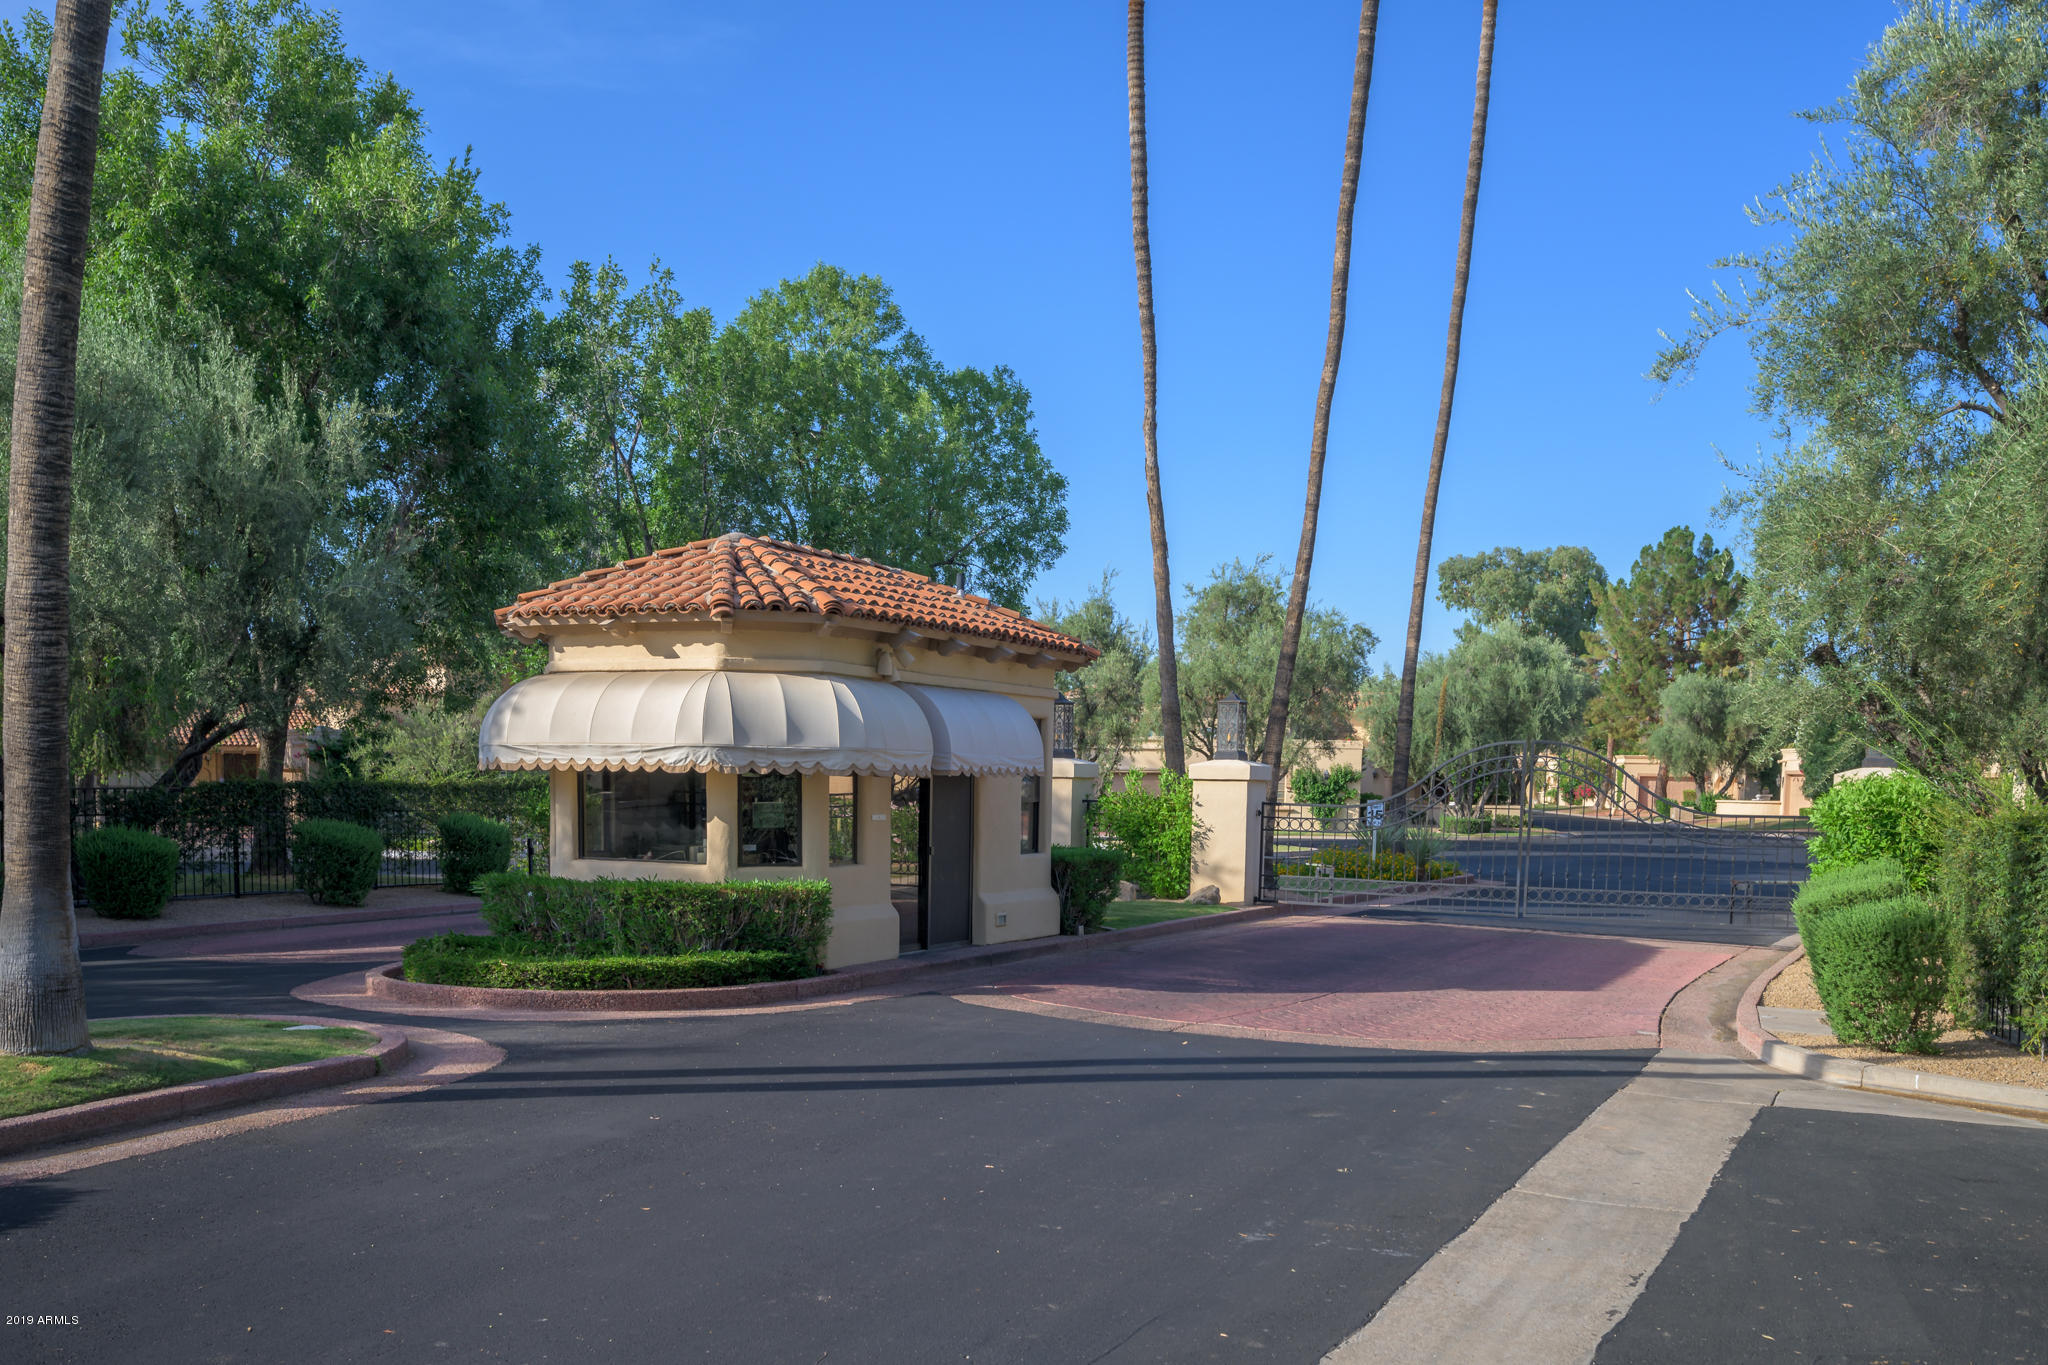 MLS 5843097 7500 E MCCORMICK Parkway Unit 63, Scottsdale, AZ 85258 Scottsdale AZ McCormick Ranch